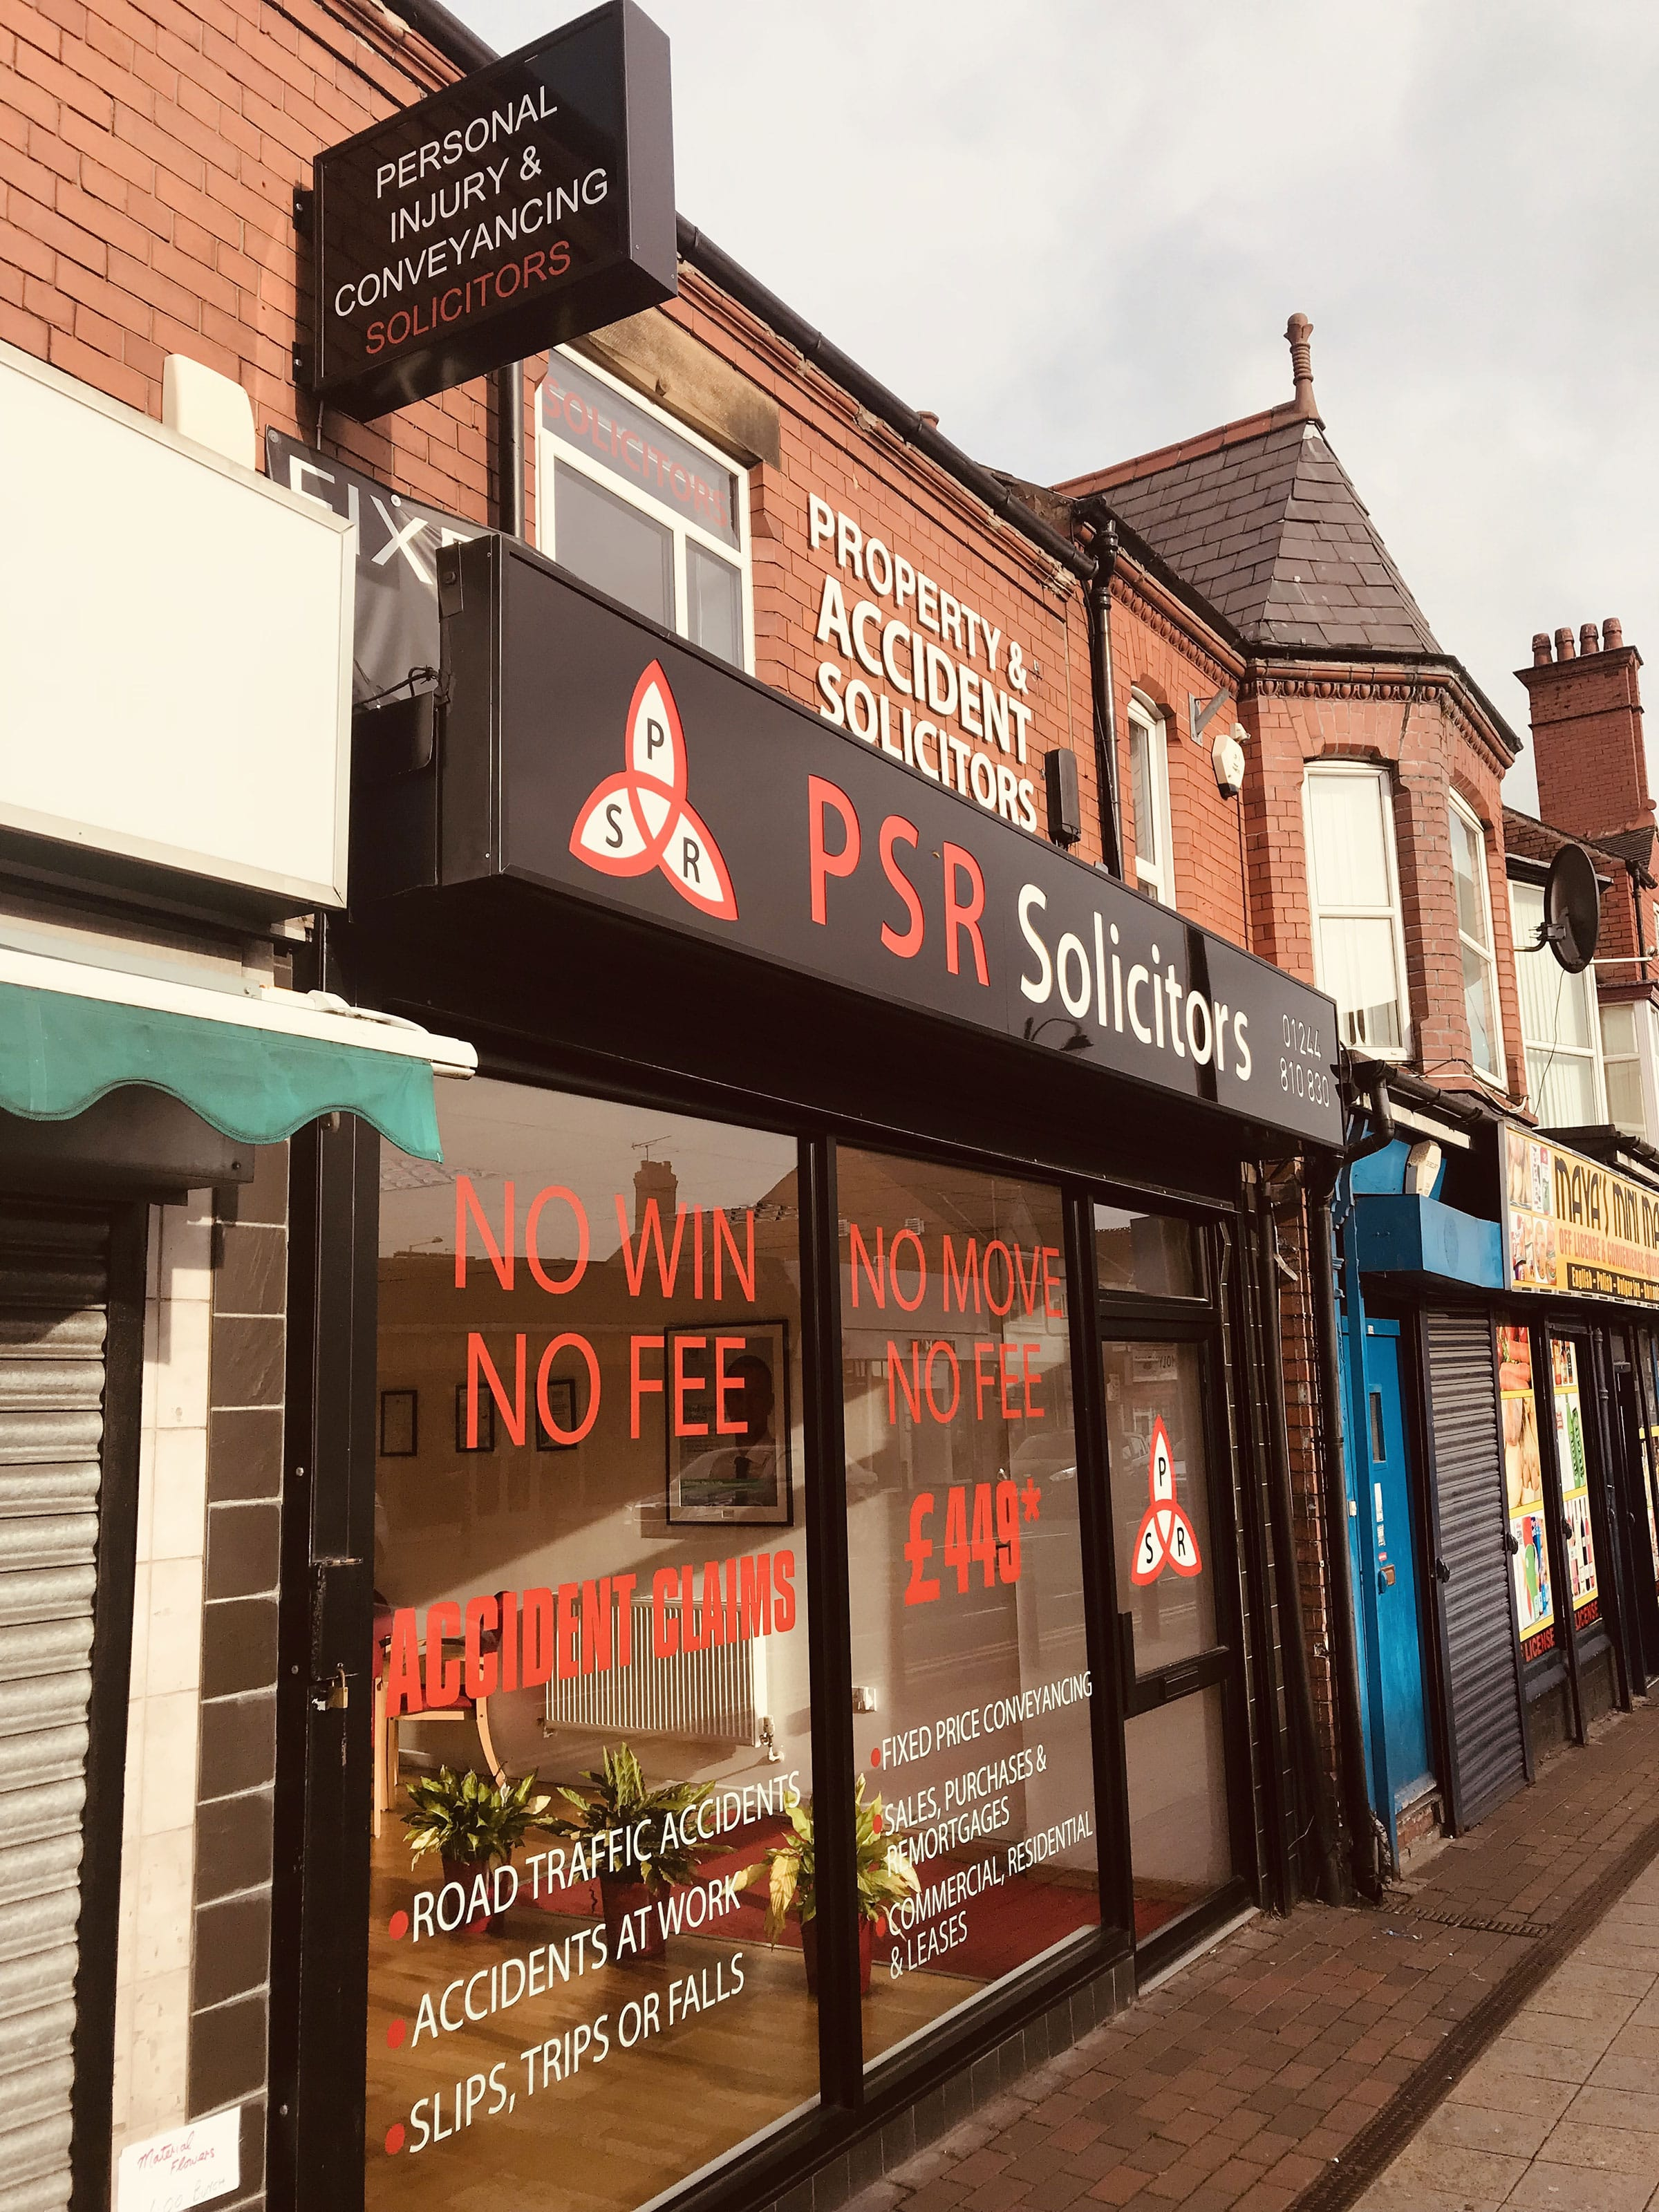 PSR Solicitors in Shotton